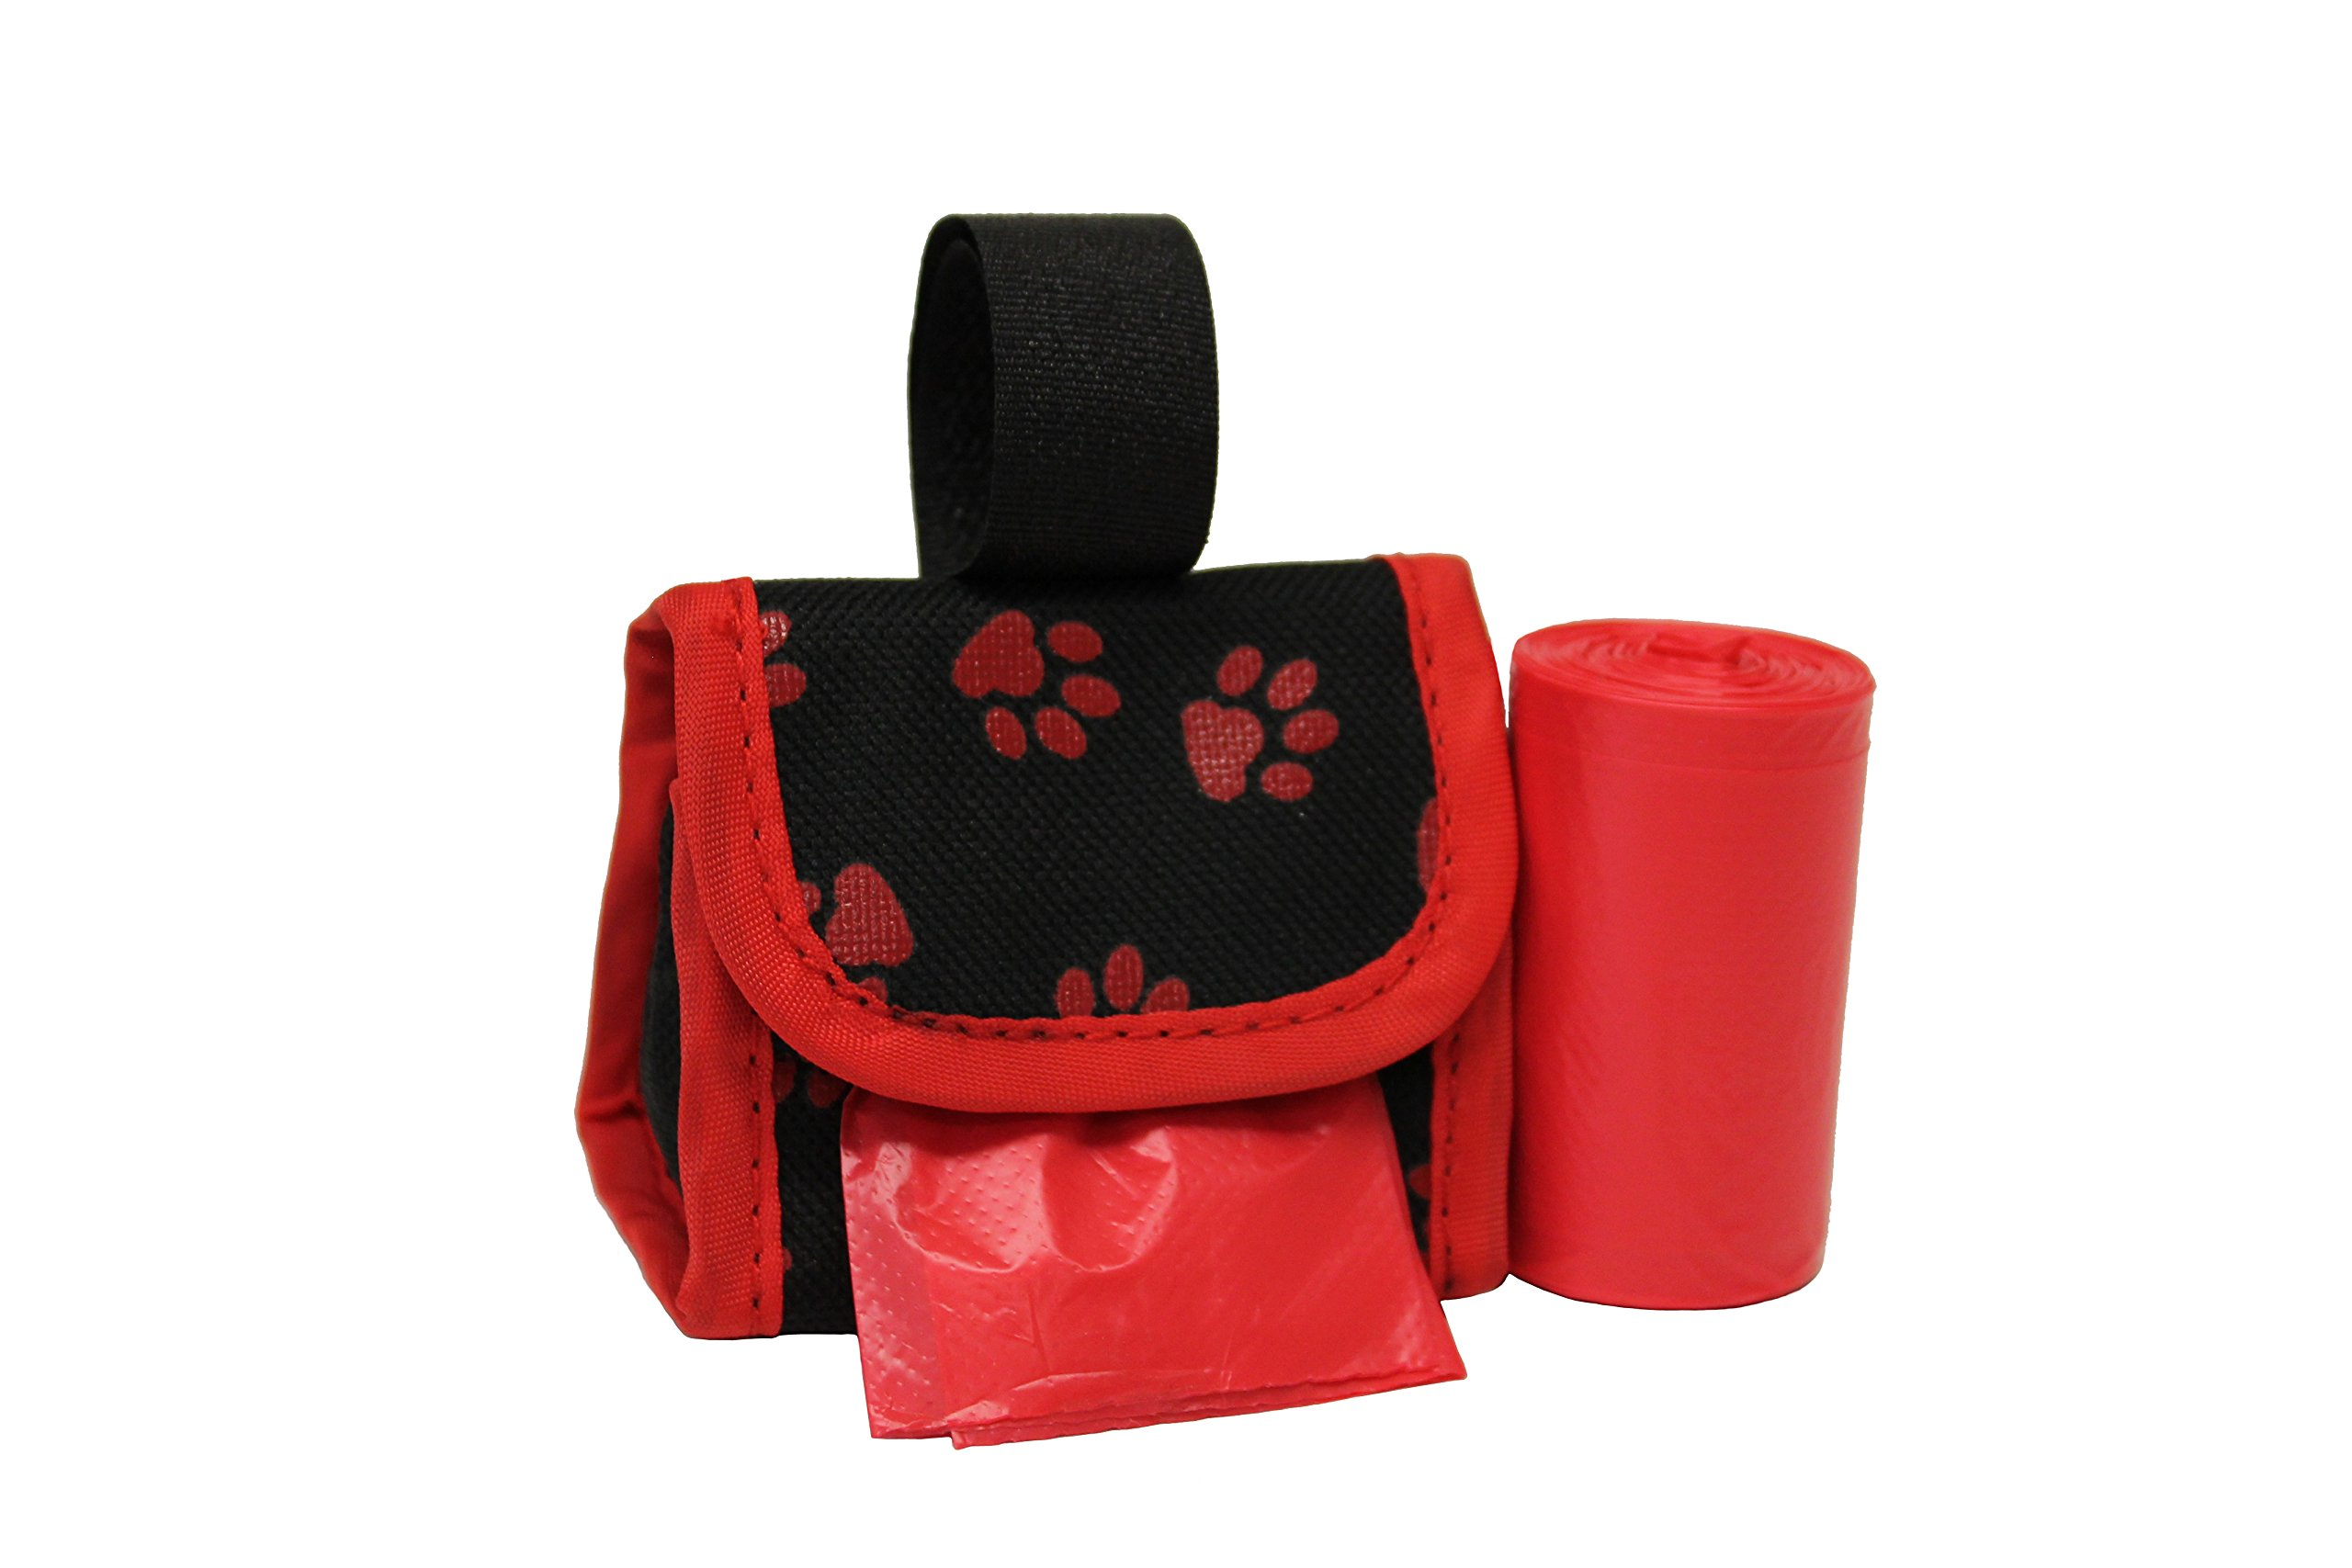 Five Star Pet Purse Waste Bag Dispenser for Pets, Red with Paws